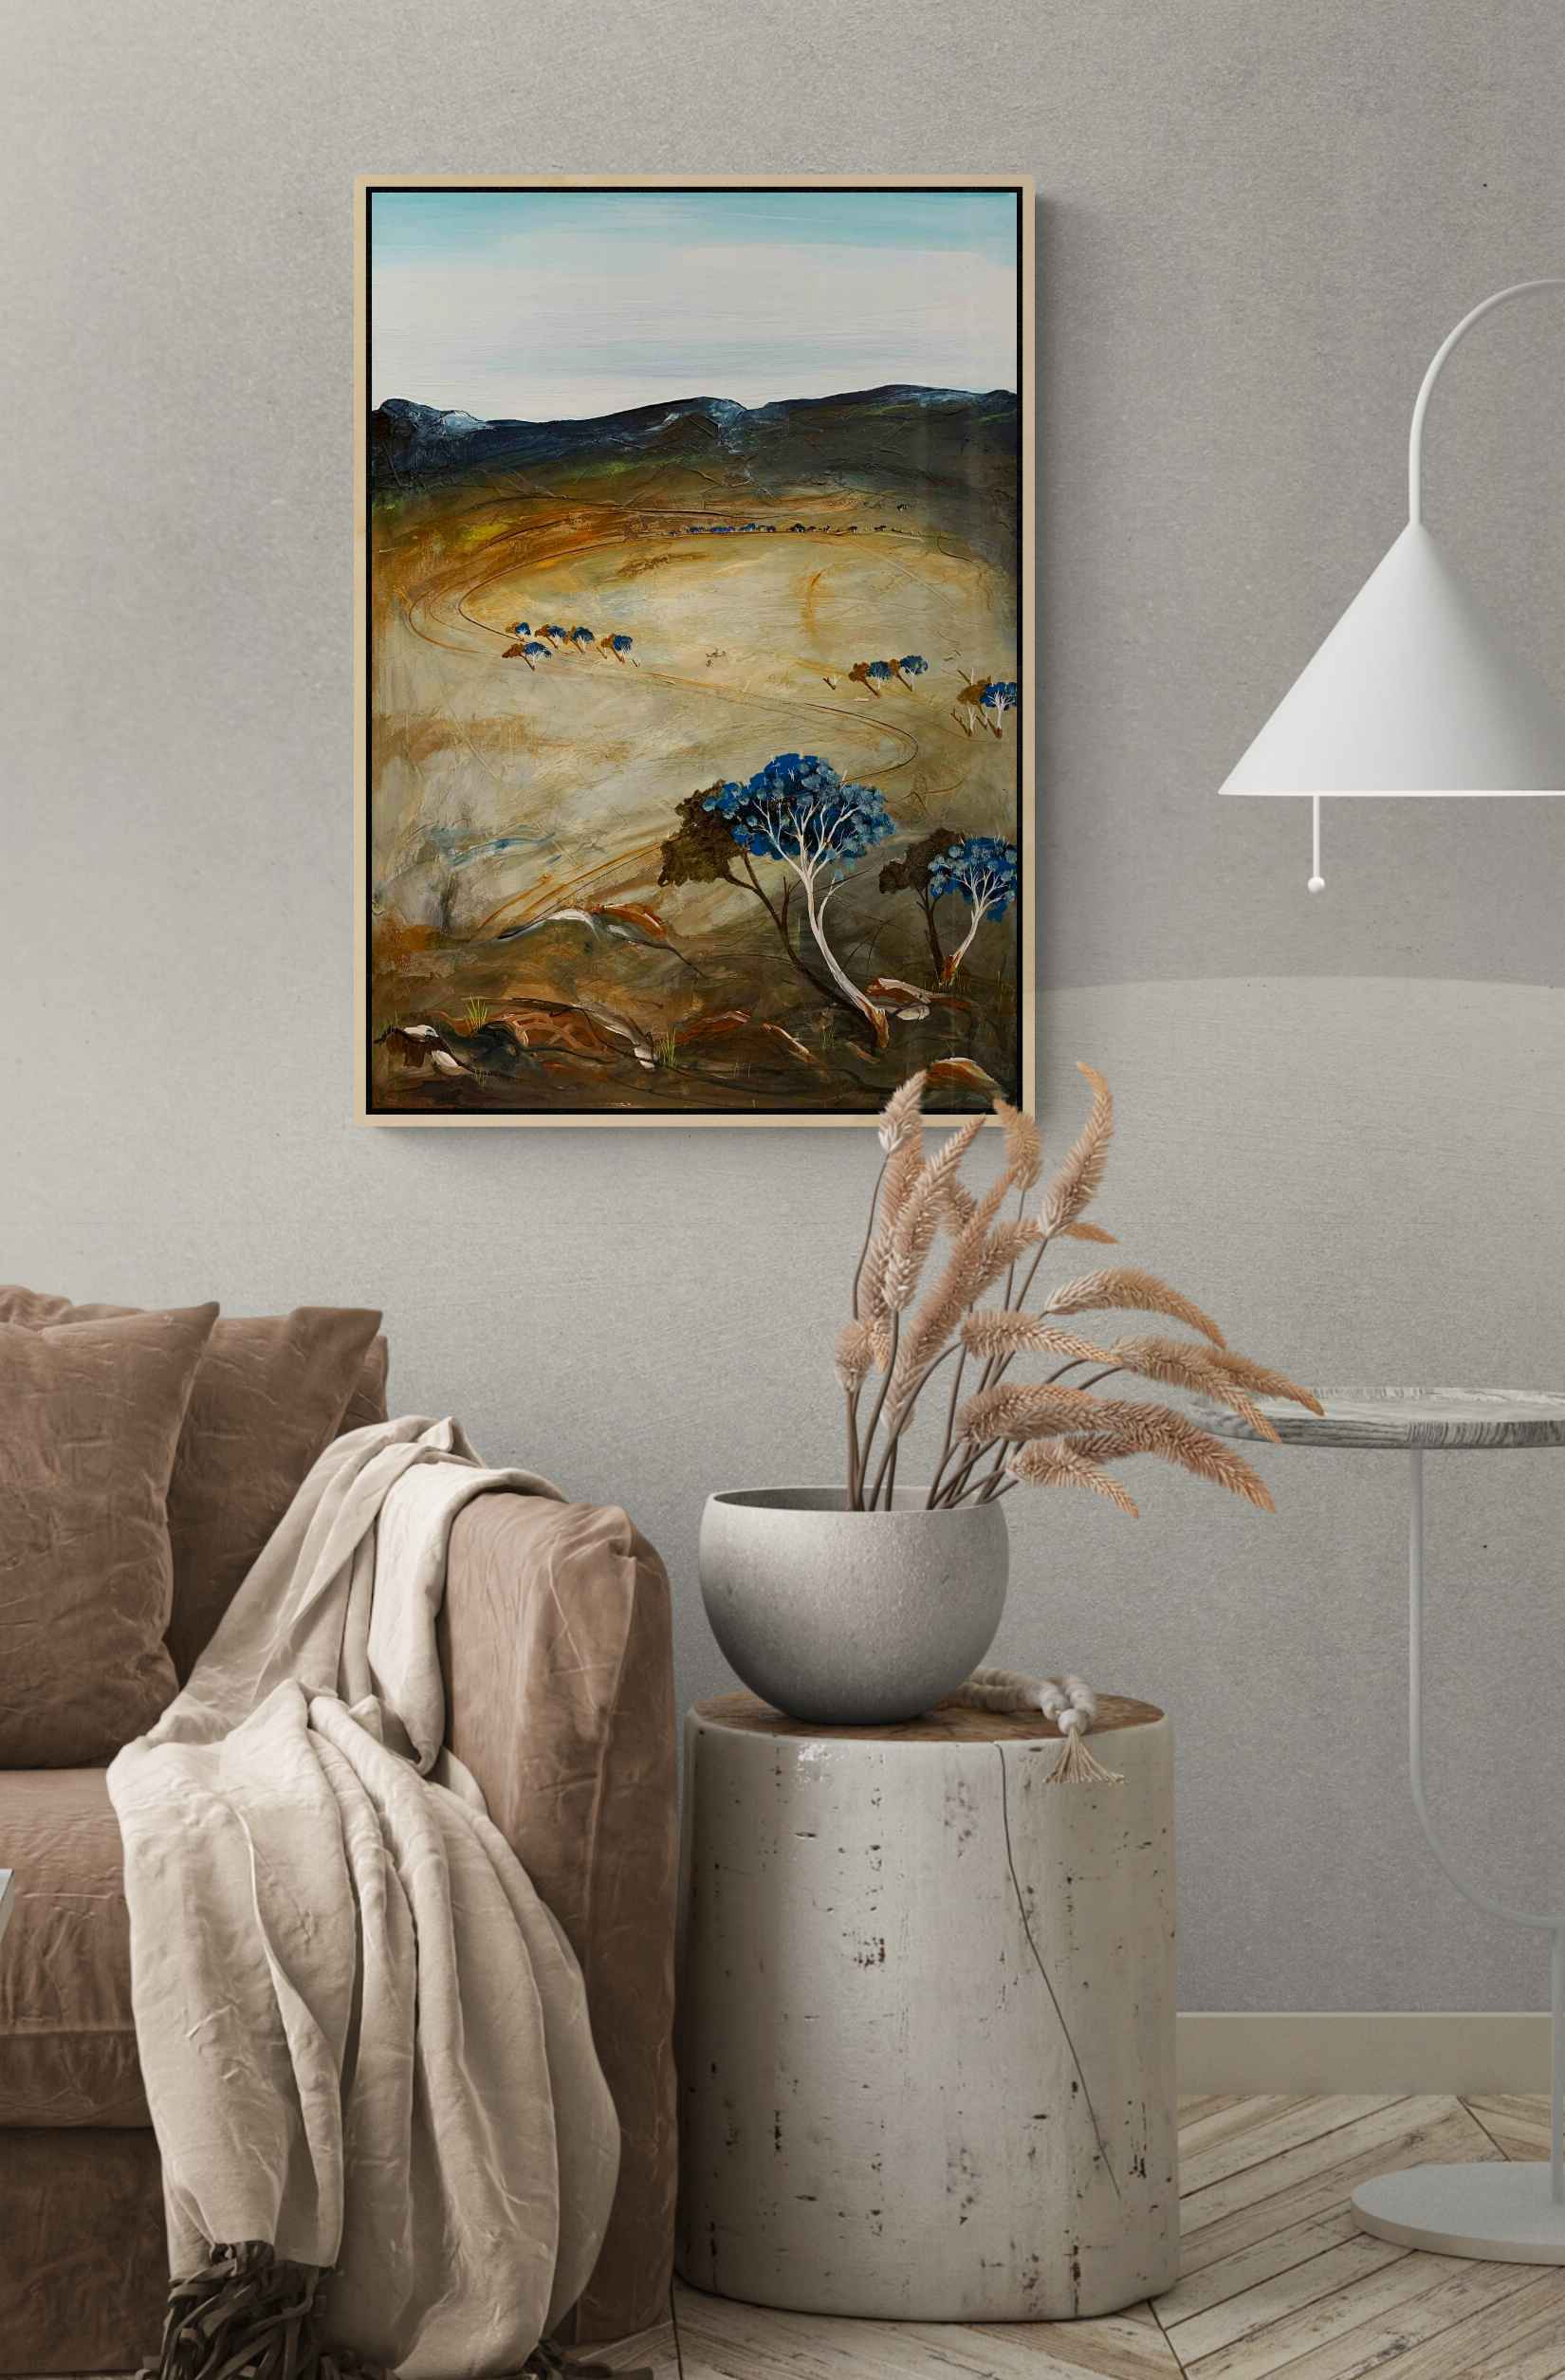 Tania Chanter Study For The Scorched Earth Landscape Art